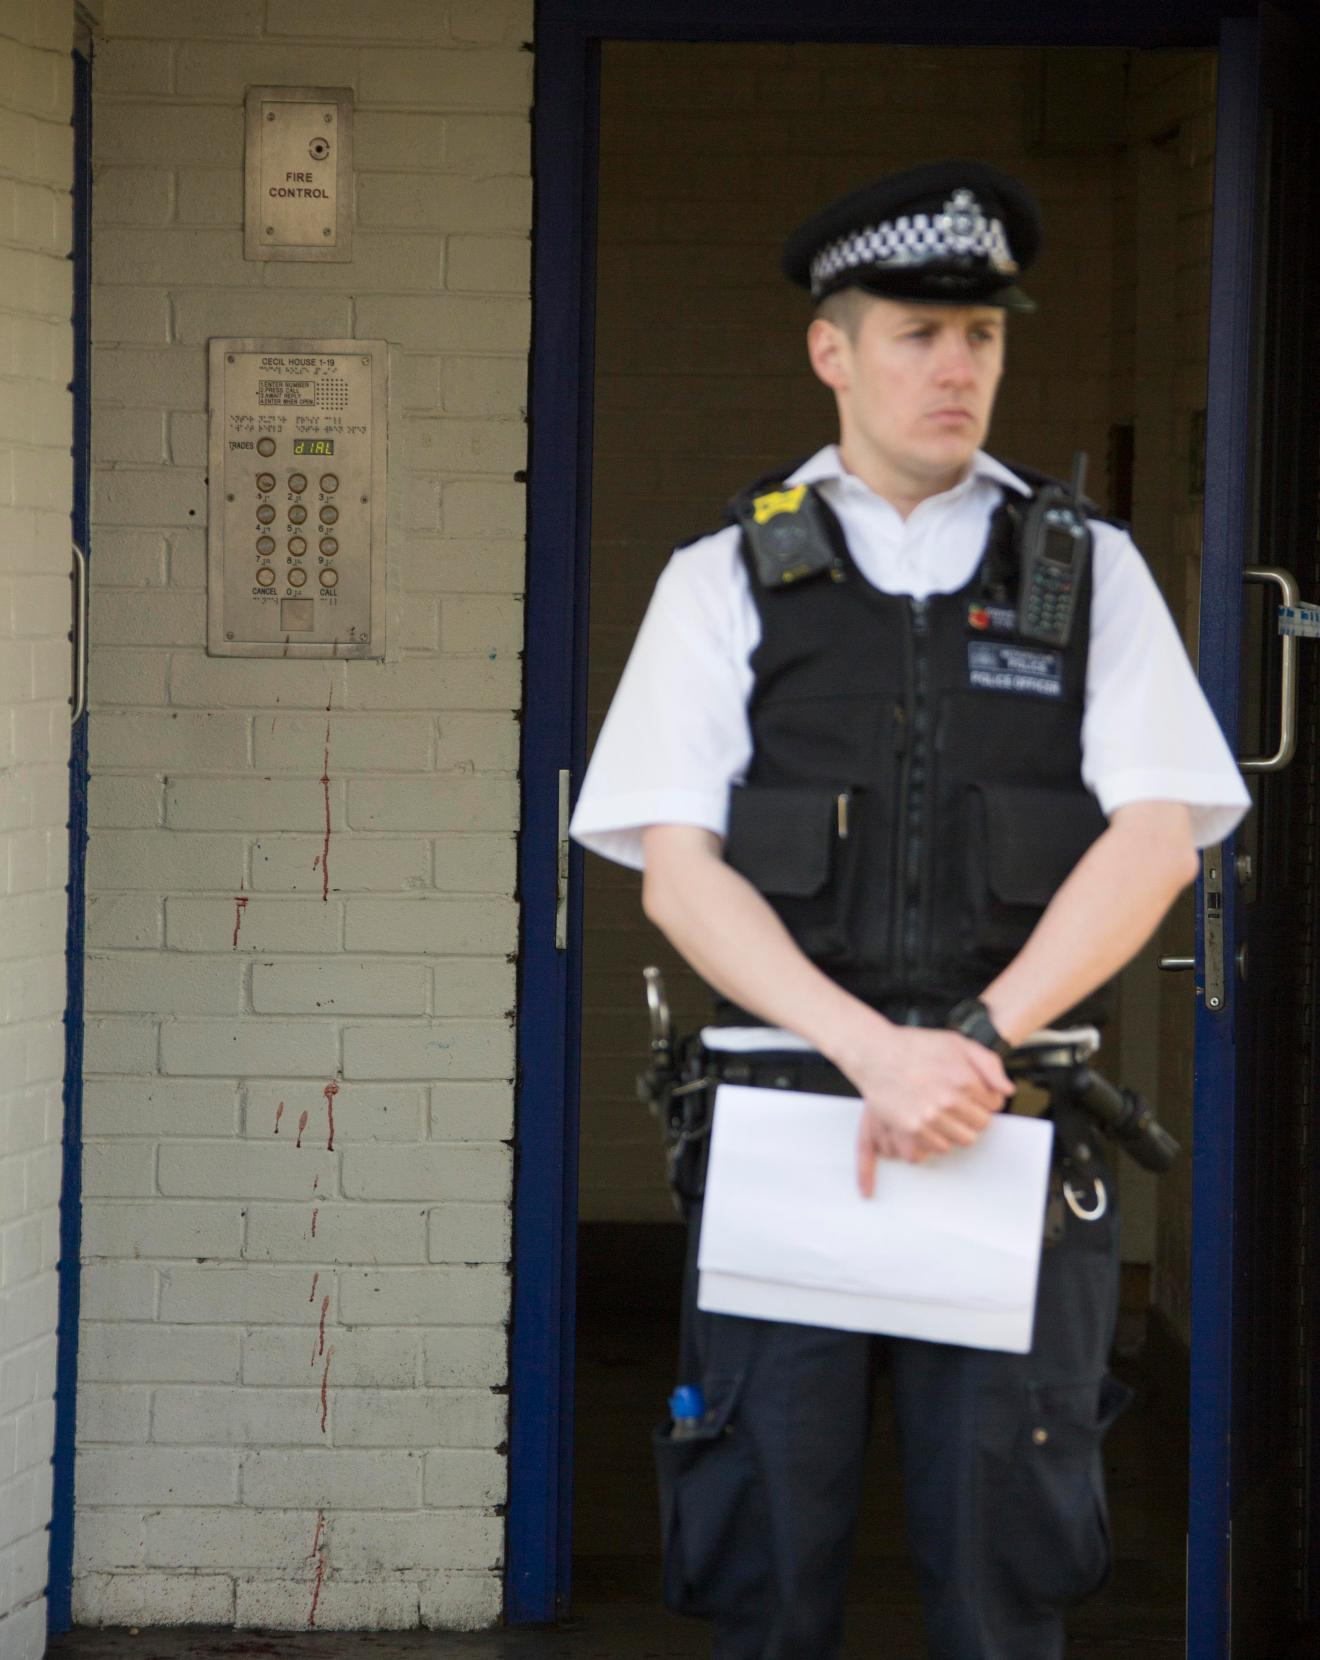 Blood is pictured dripping down a wall after the lunchtime stabbing in Walthamstow